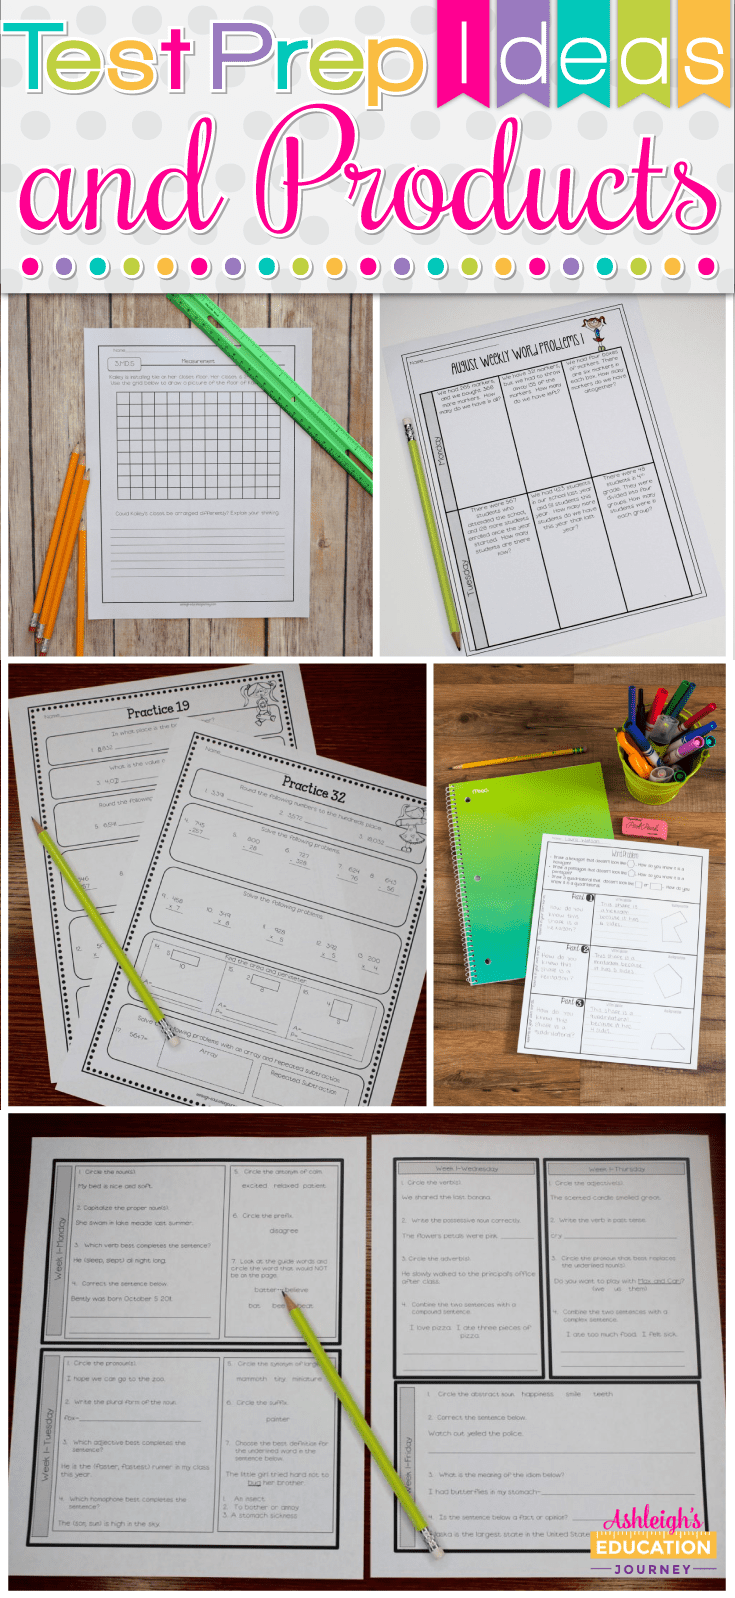 Teachers and students alike feel the pressure of preparing for state standardized testing. No matter your opinions about it, it's a reality for teachers everywhere, and it's important to find a test prep method that works for you and your students. This blog post explores a variety of different test prep ideas and products you can use that might make test prep smoother in your 3rd grade, 4th grade, or 5th grade classroom!